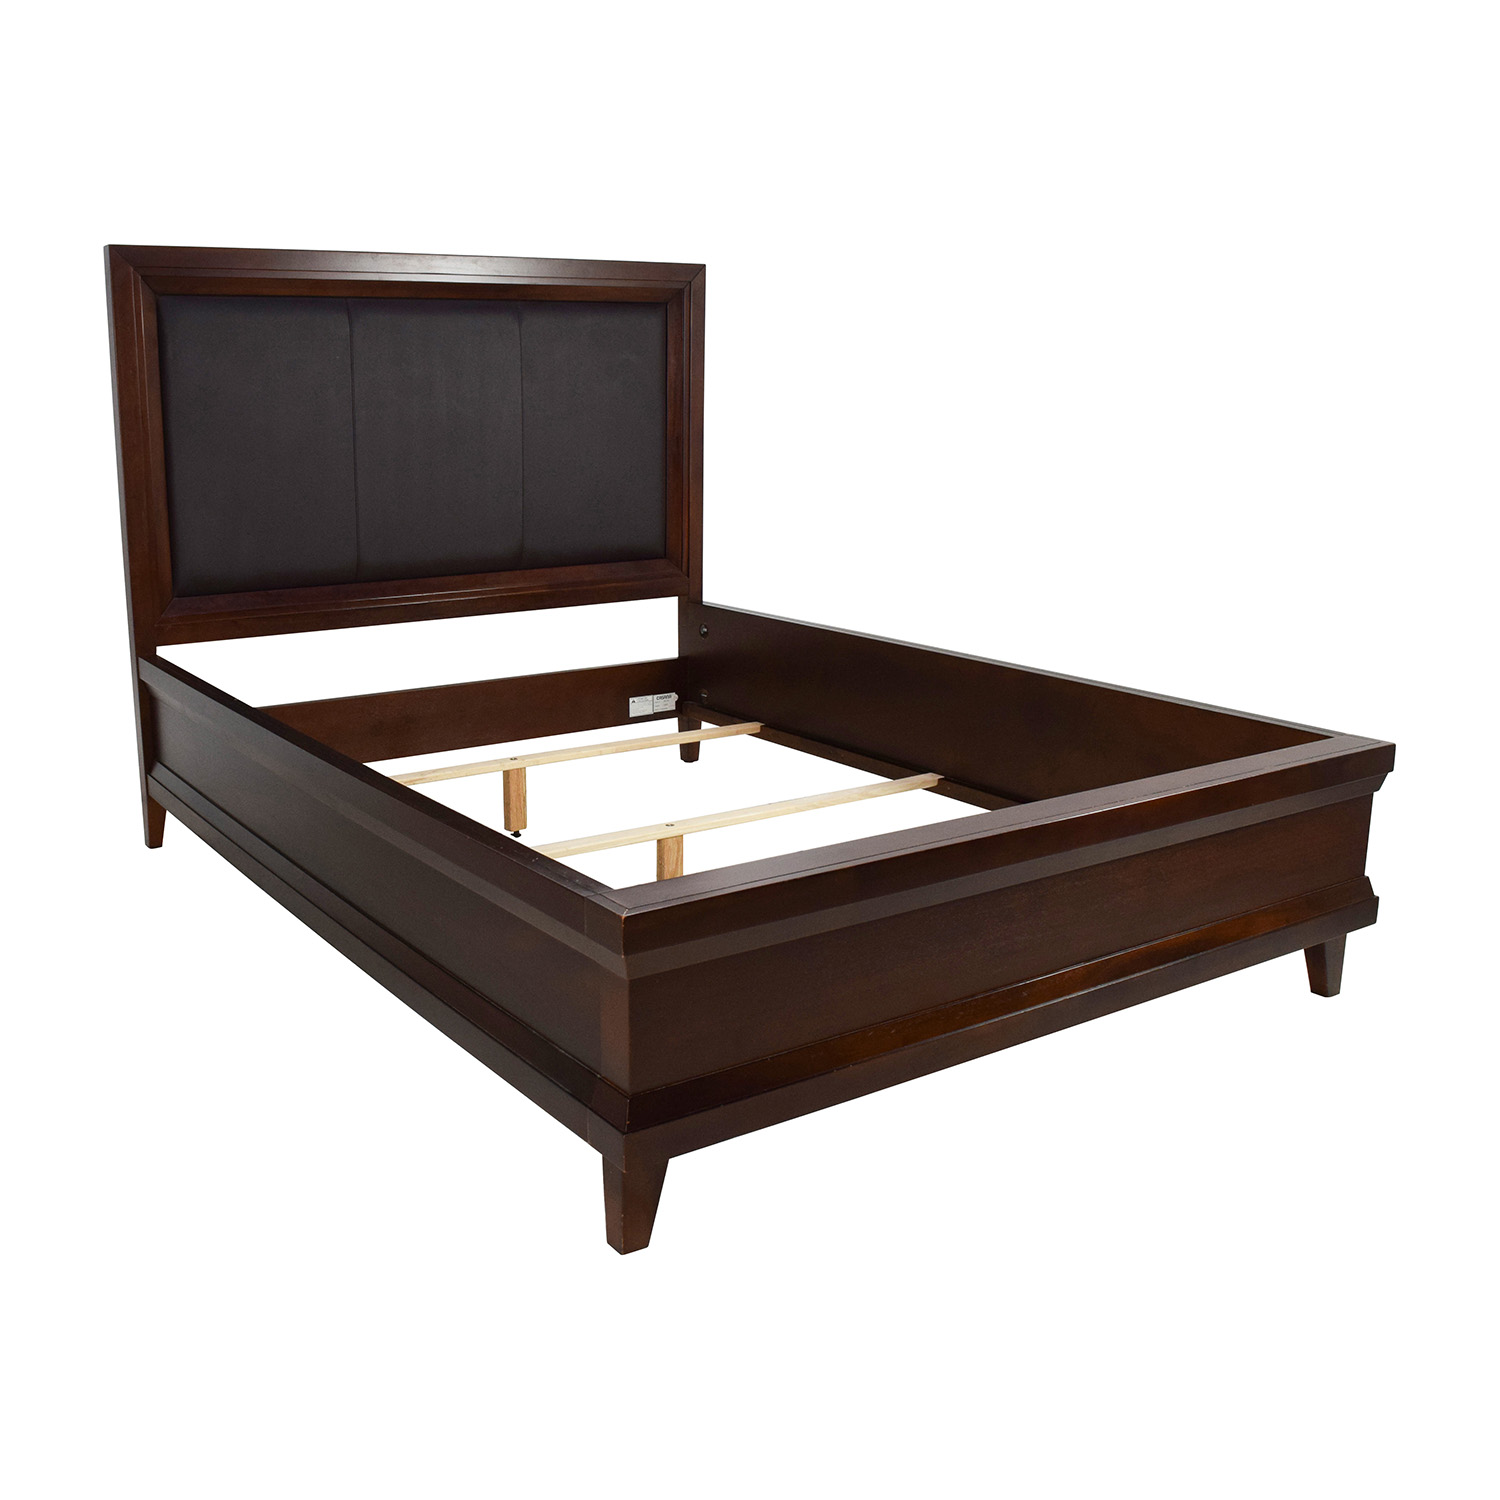 Raymour And Flanigan Vista Queen Bed With Leather Headboard Online